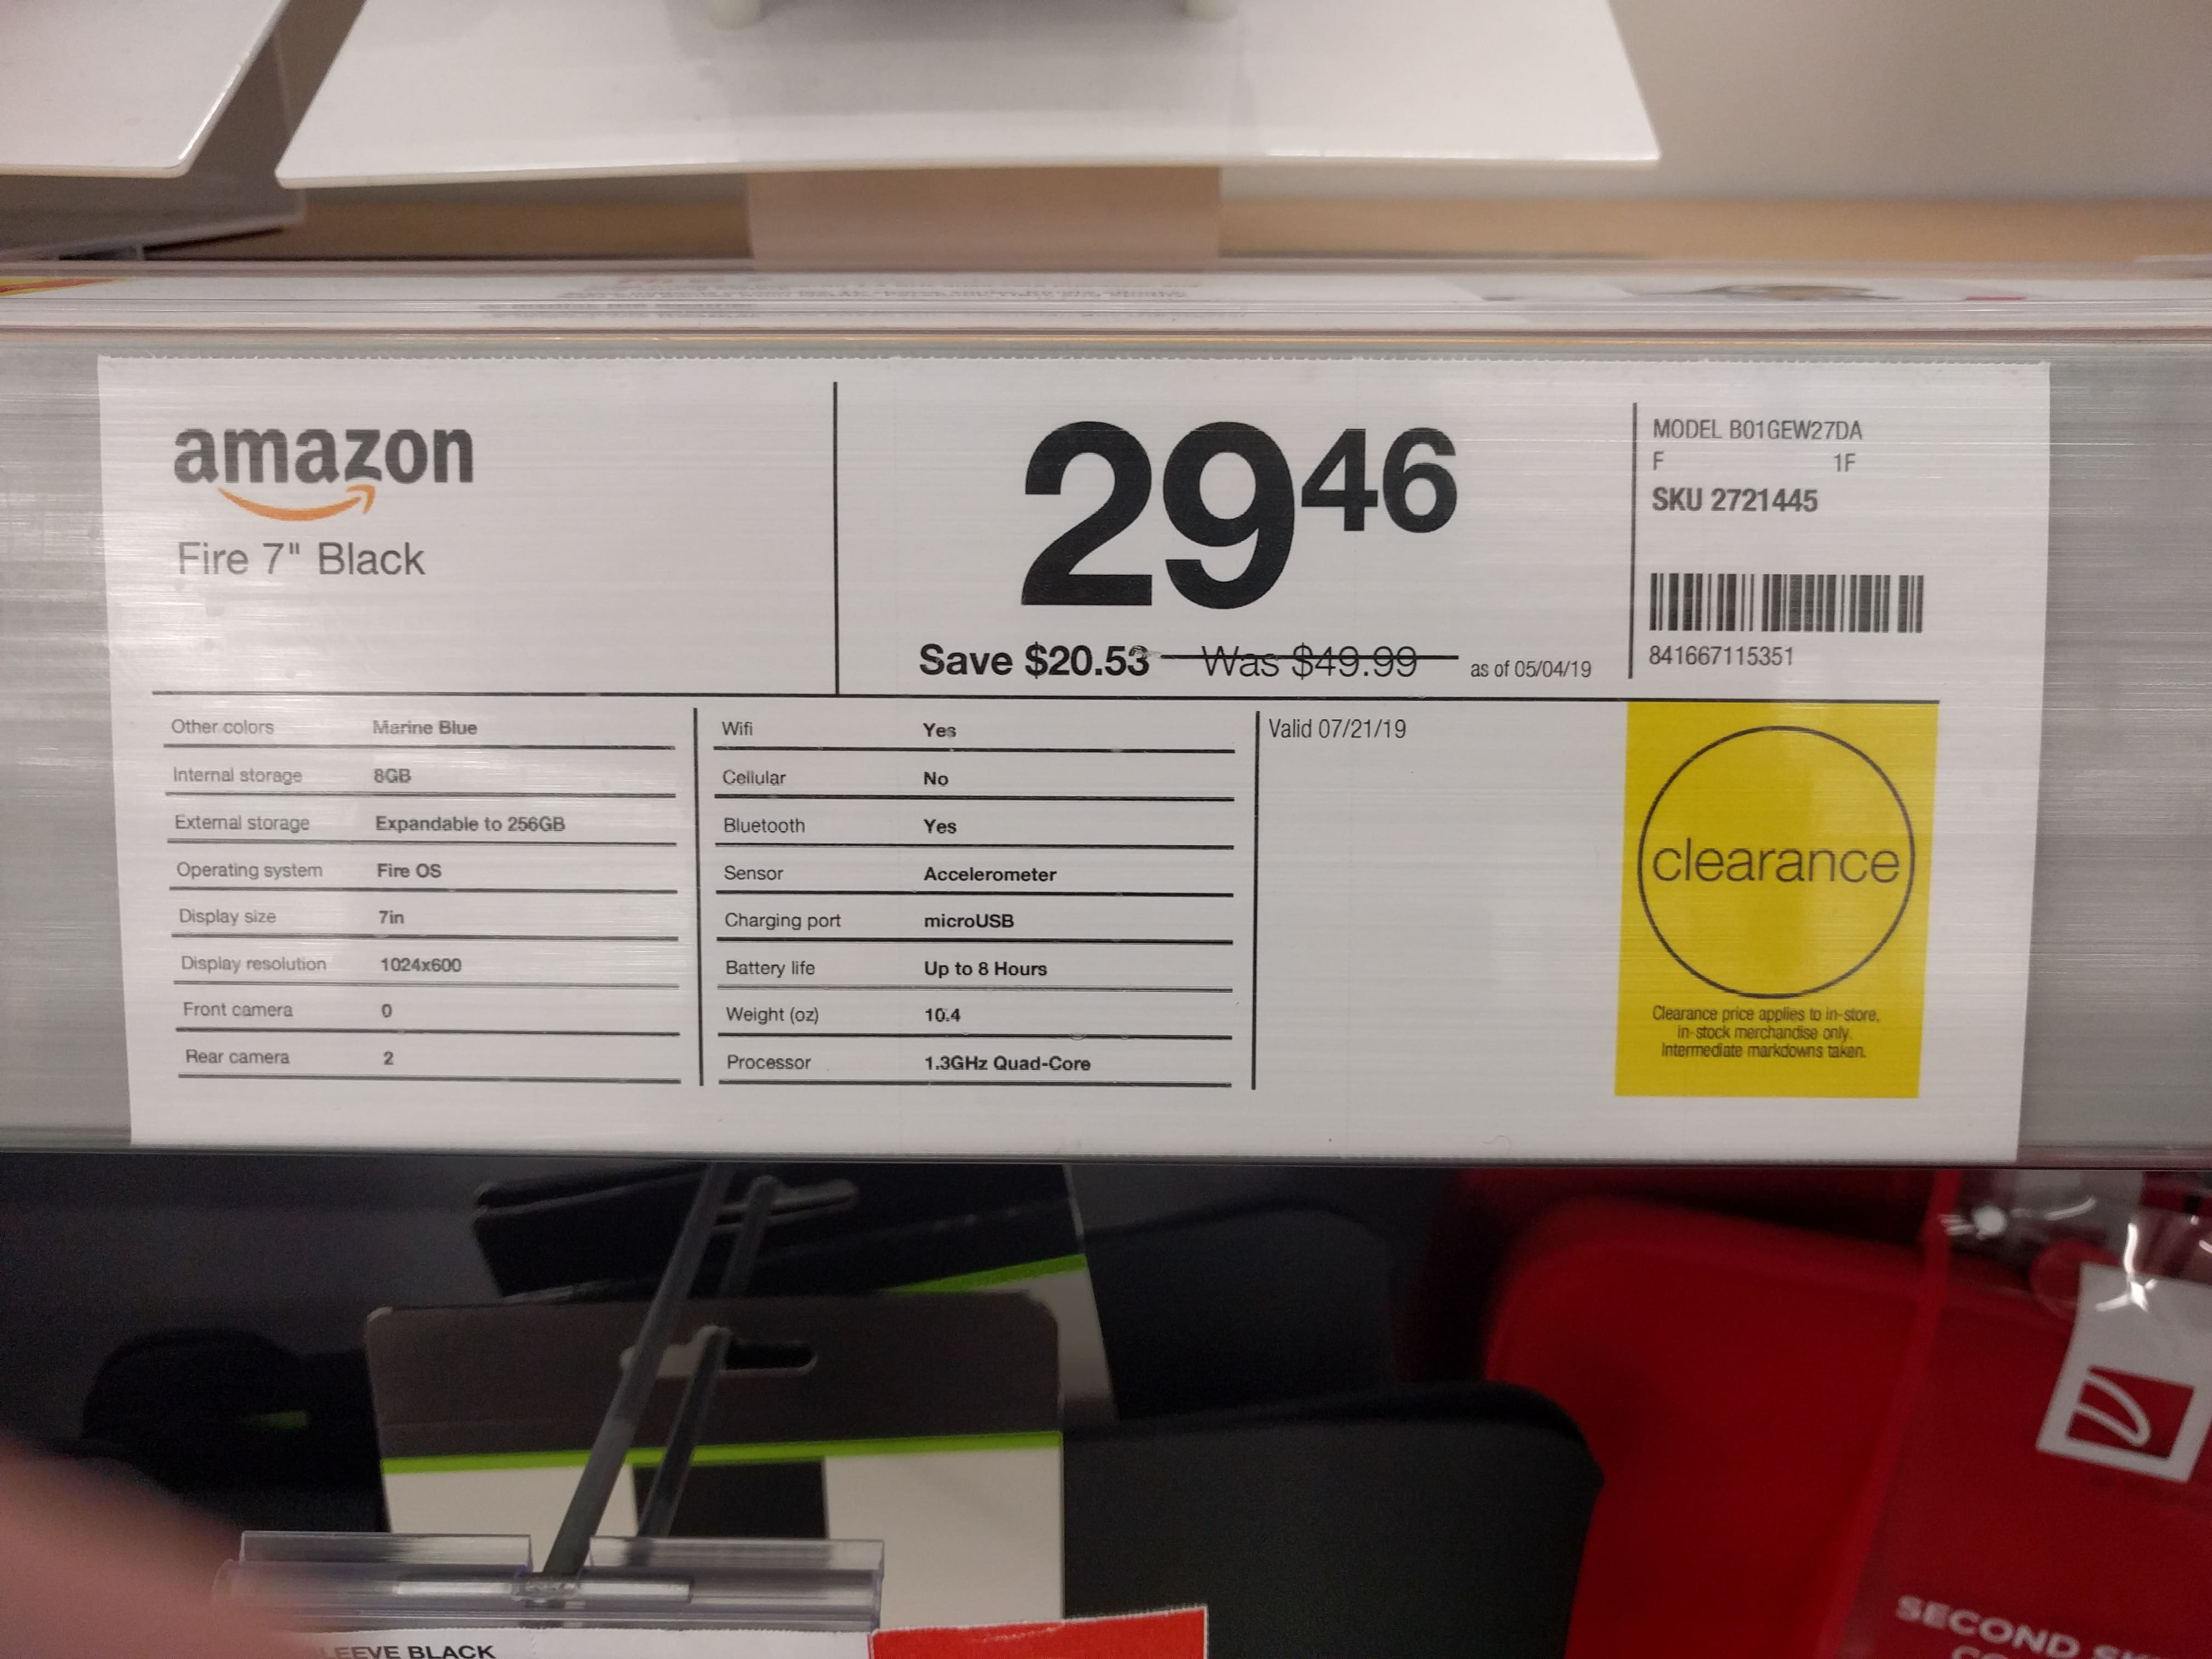 """YMMV Staples Amazon Fire 7"""" Android Tablet with Alexa, 8 GB (B01IO618J8) In-Store Only $24.96 $29.46"""